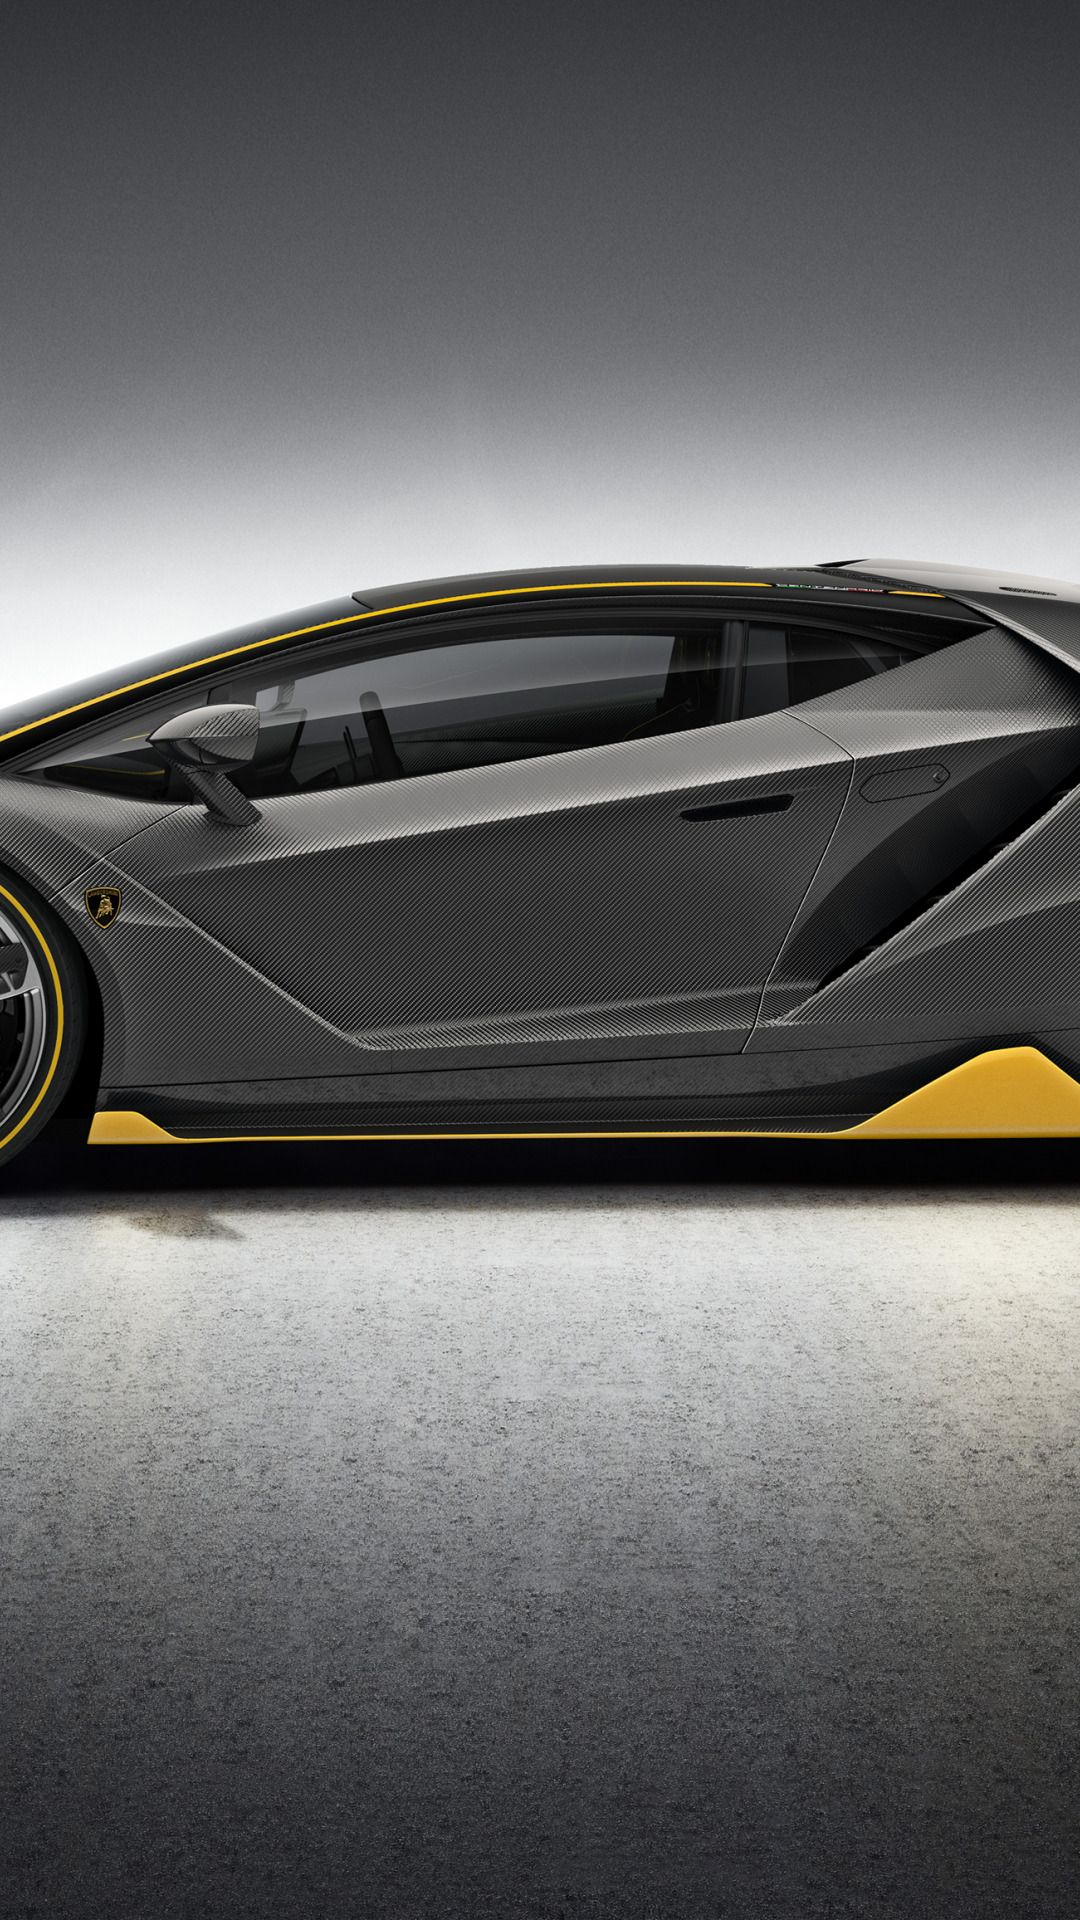 Pin By Bestsupercars On Lamborghini Lamborghini Centenario Super Sport Cars Free Hd Wallpapers